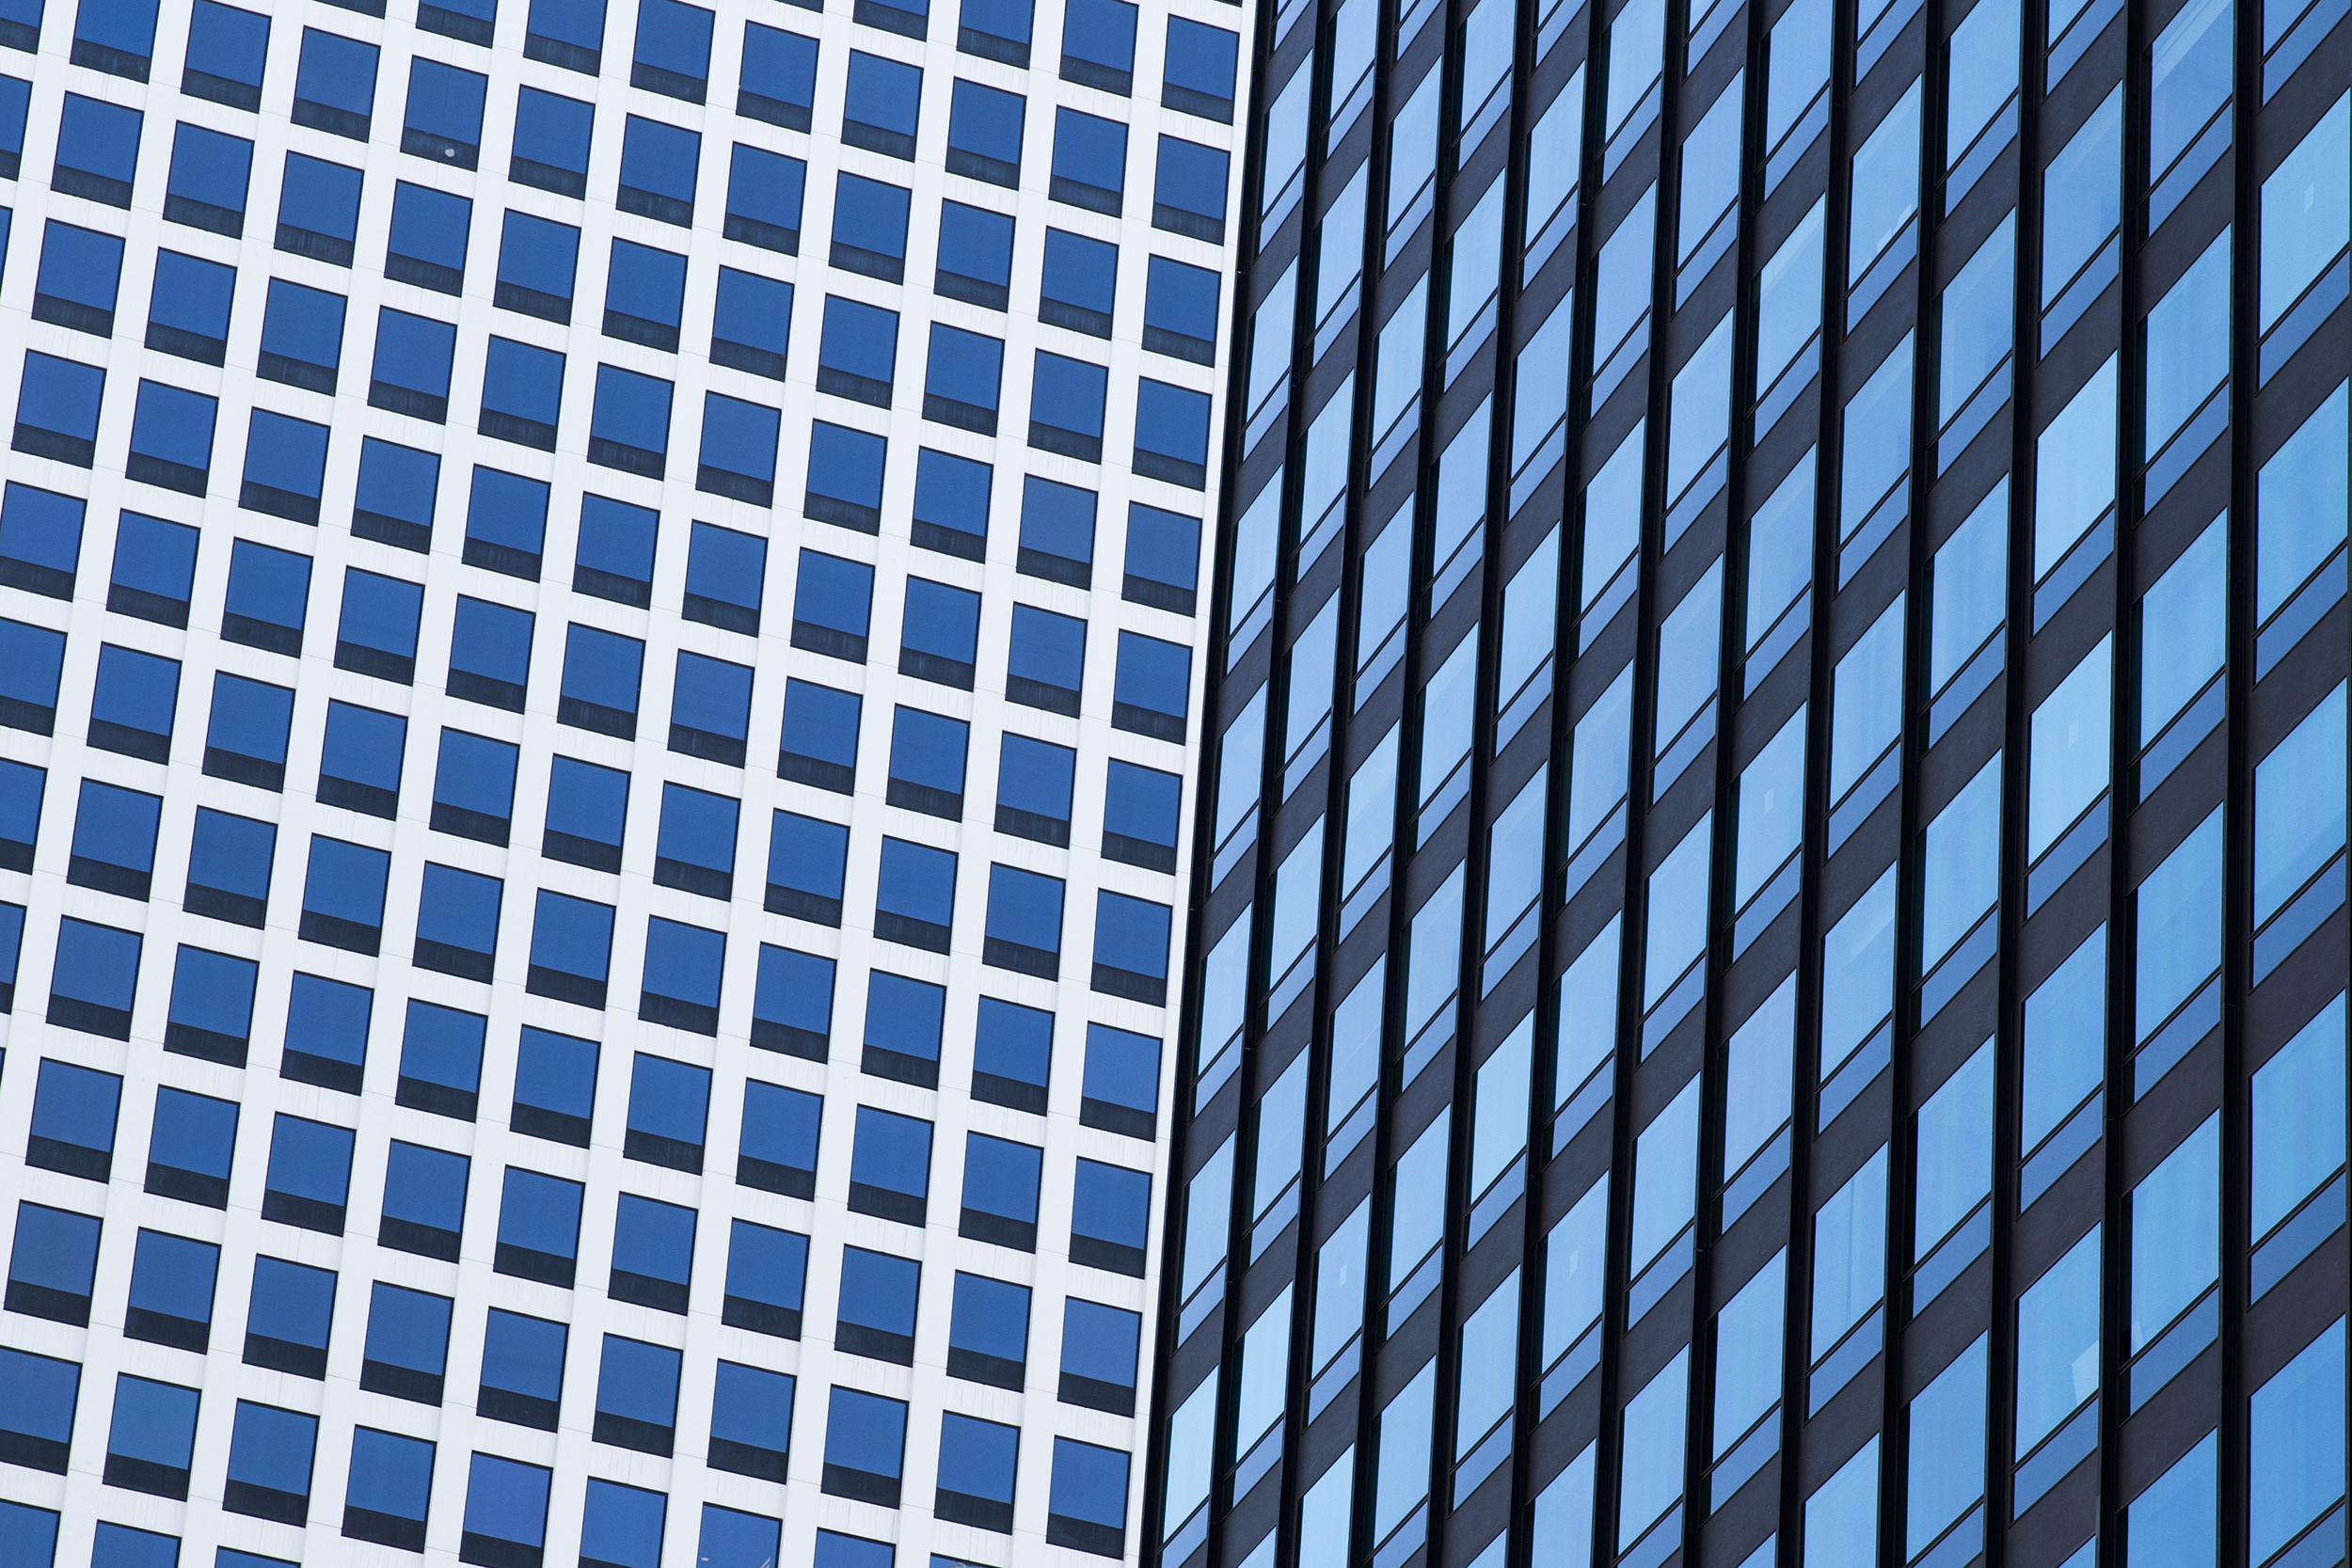 chicago-buildings-IMG_9875-web.jpg